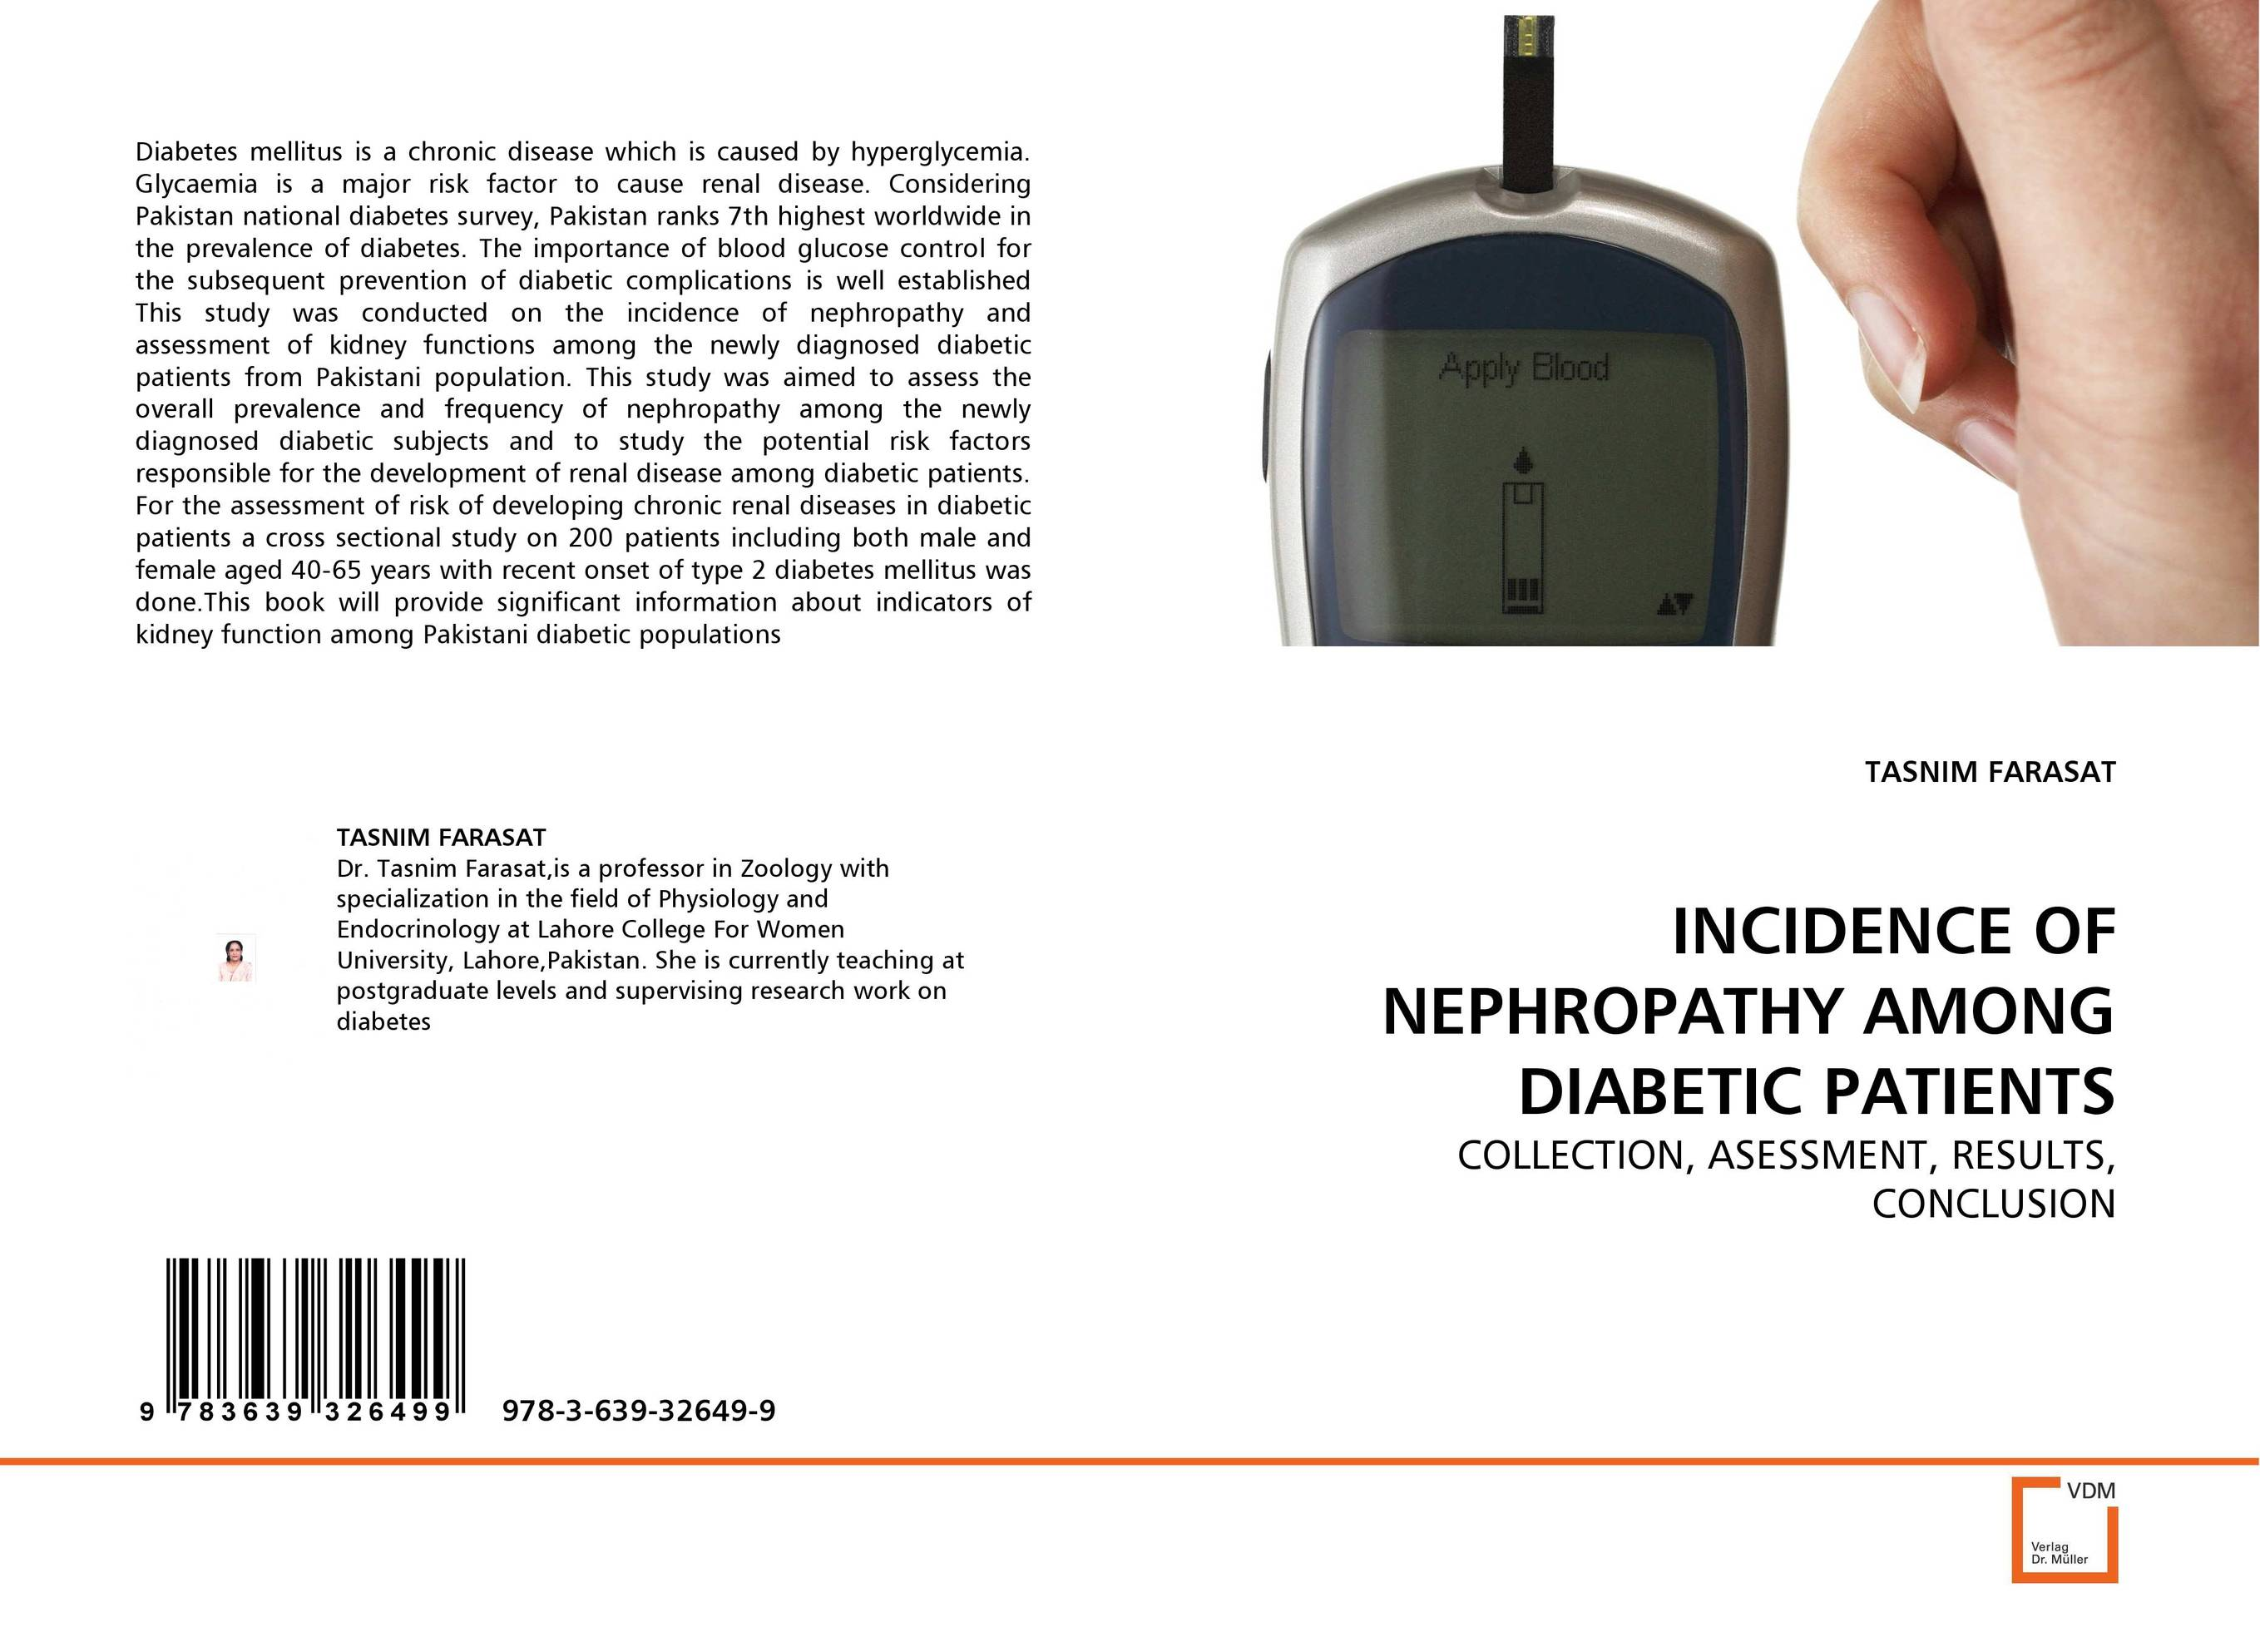 INCIDENCE OF NEPHROPATHY AMONG DIABETIC PATIENTS chronic nonbacterial prostatitis treatment deivce enhance renal function treatment watch for diabetic type b muscle stimulator